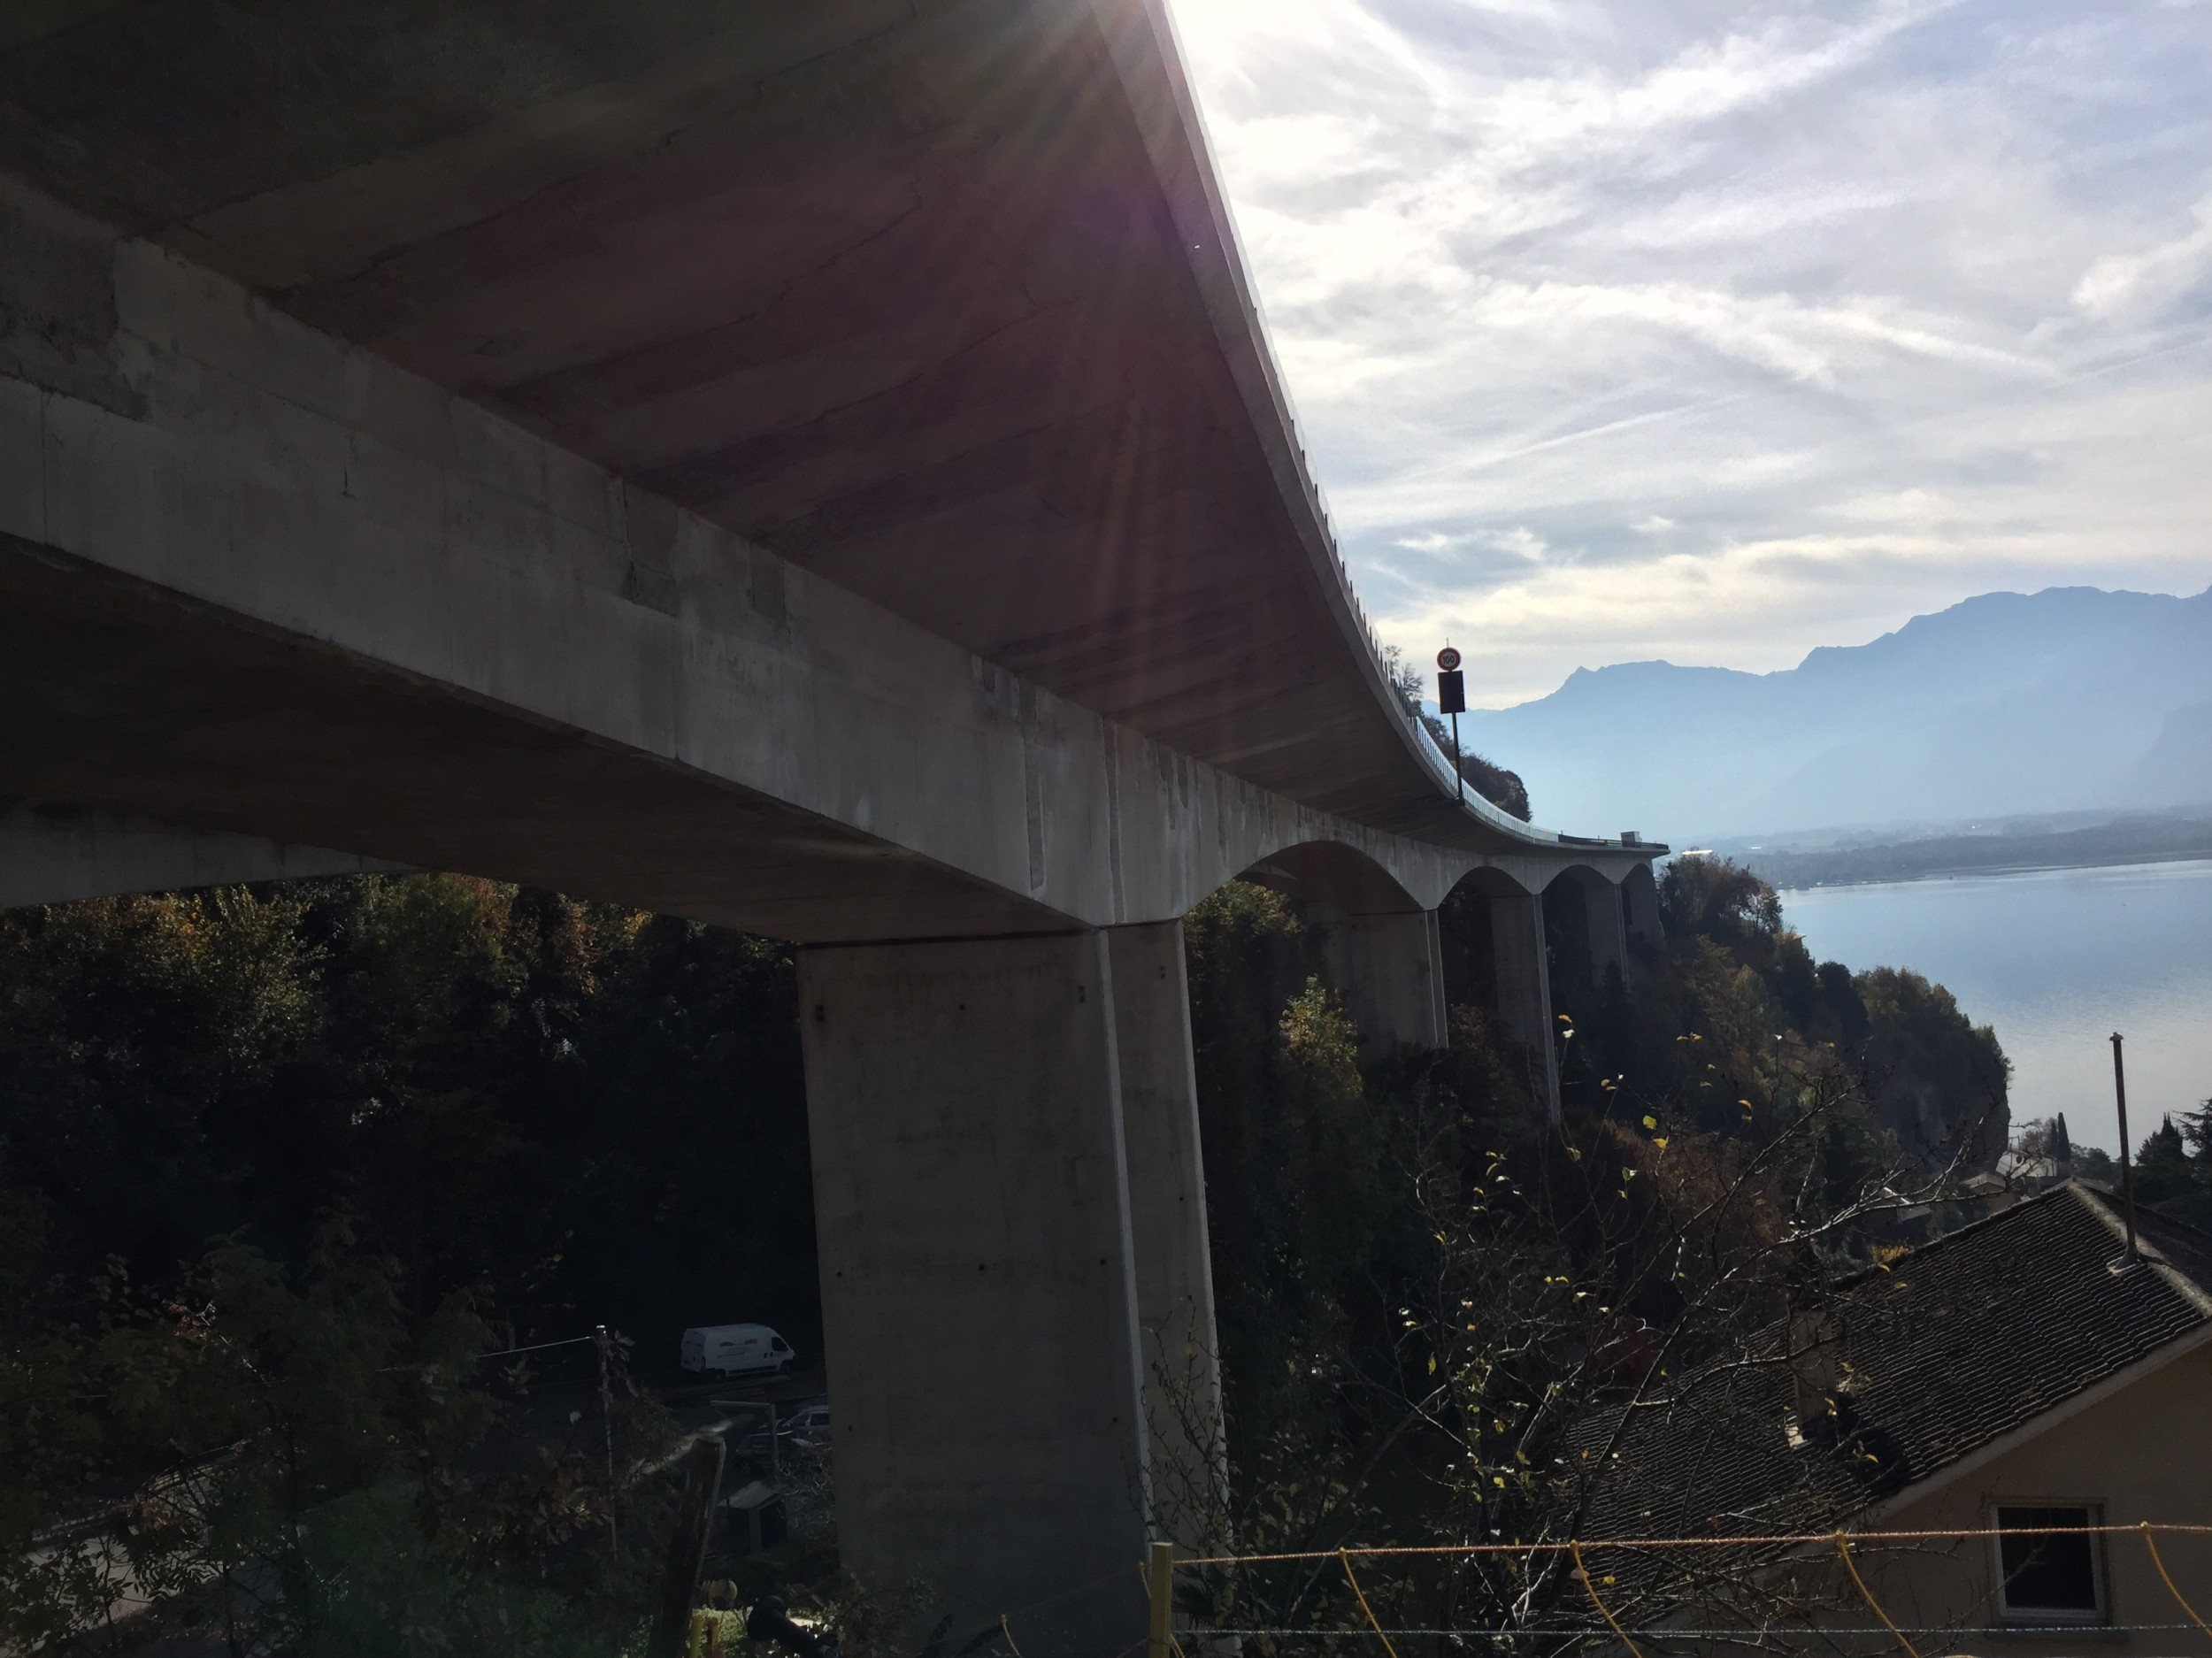 The Chillon Bridge was renovated with ultra-high-performance fibre reinforced concrete.